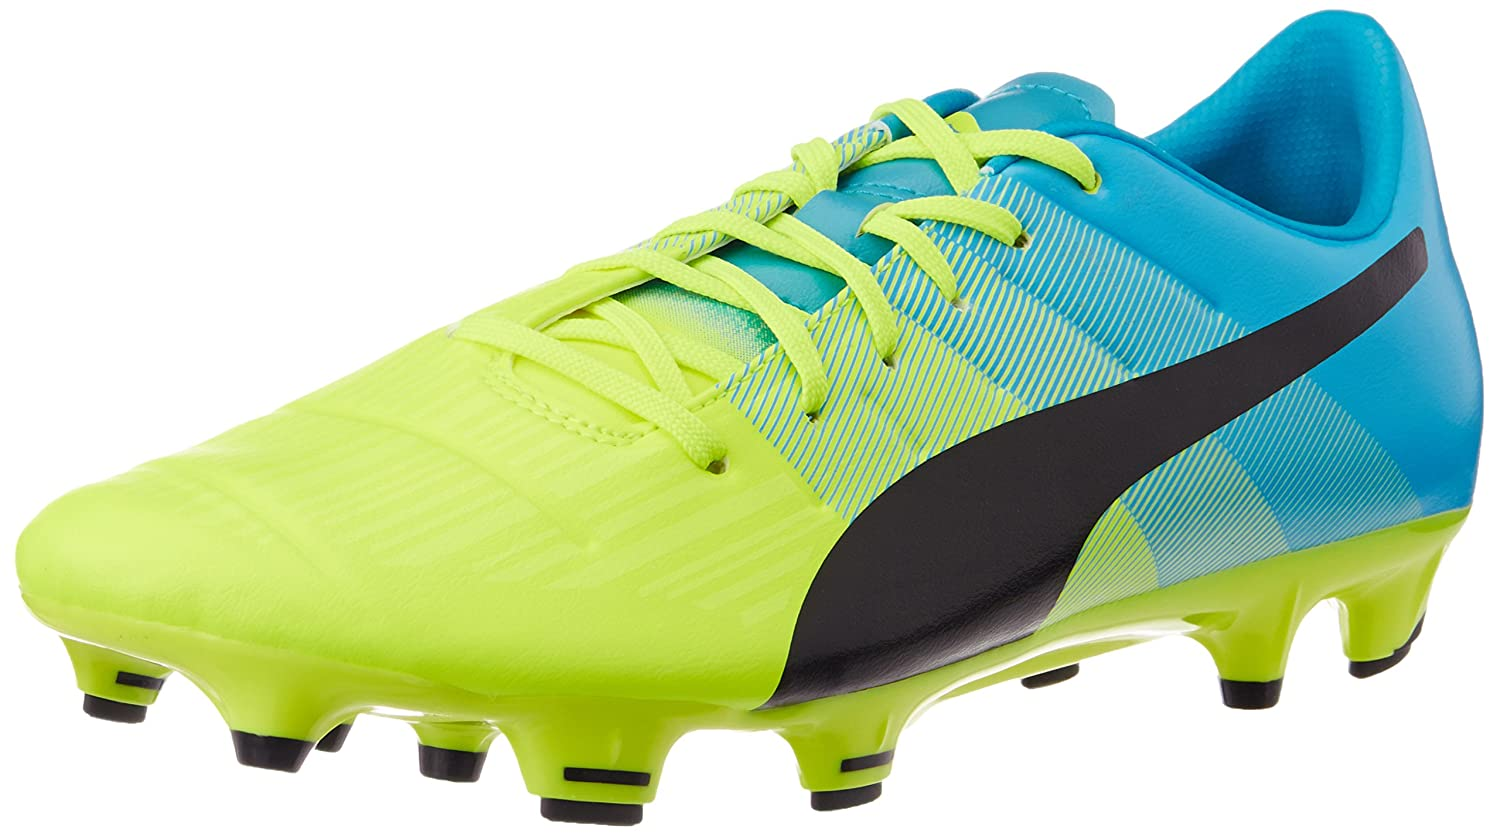 c3036f784789 Puma evoPOWER 3.3 Firm Ground, Men's Football Training Shoes: Amazon.co.uk:  Shoes & Bags